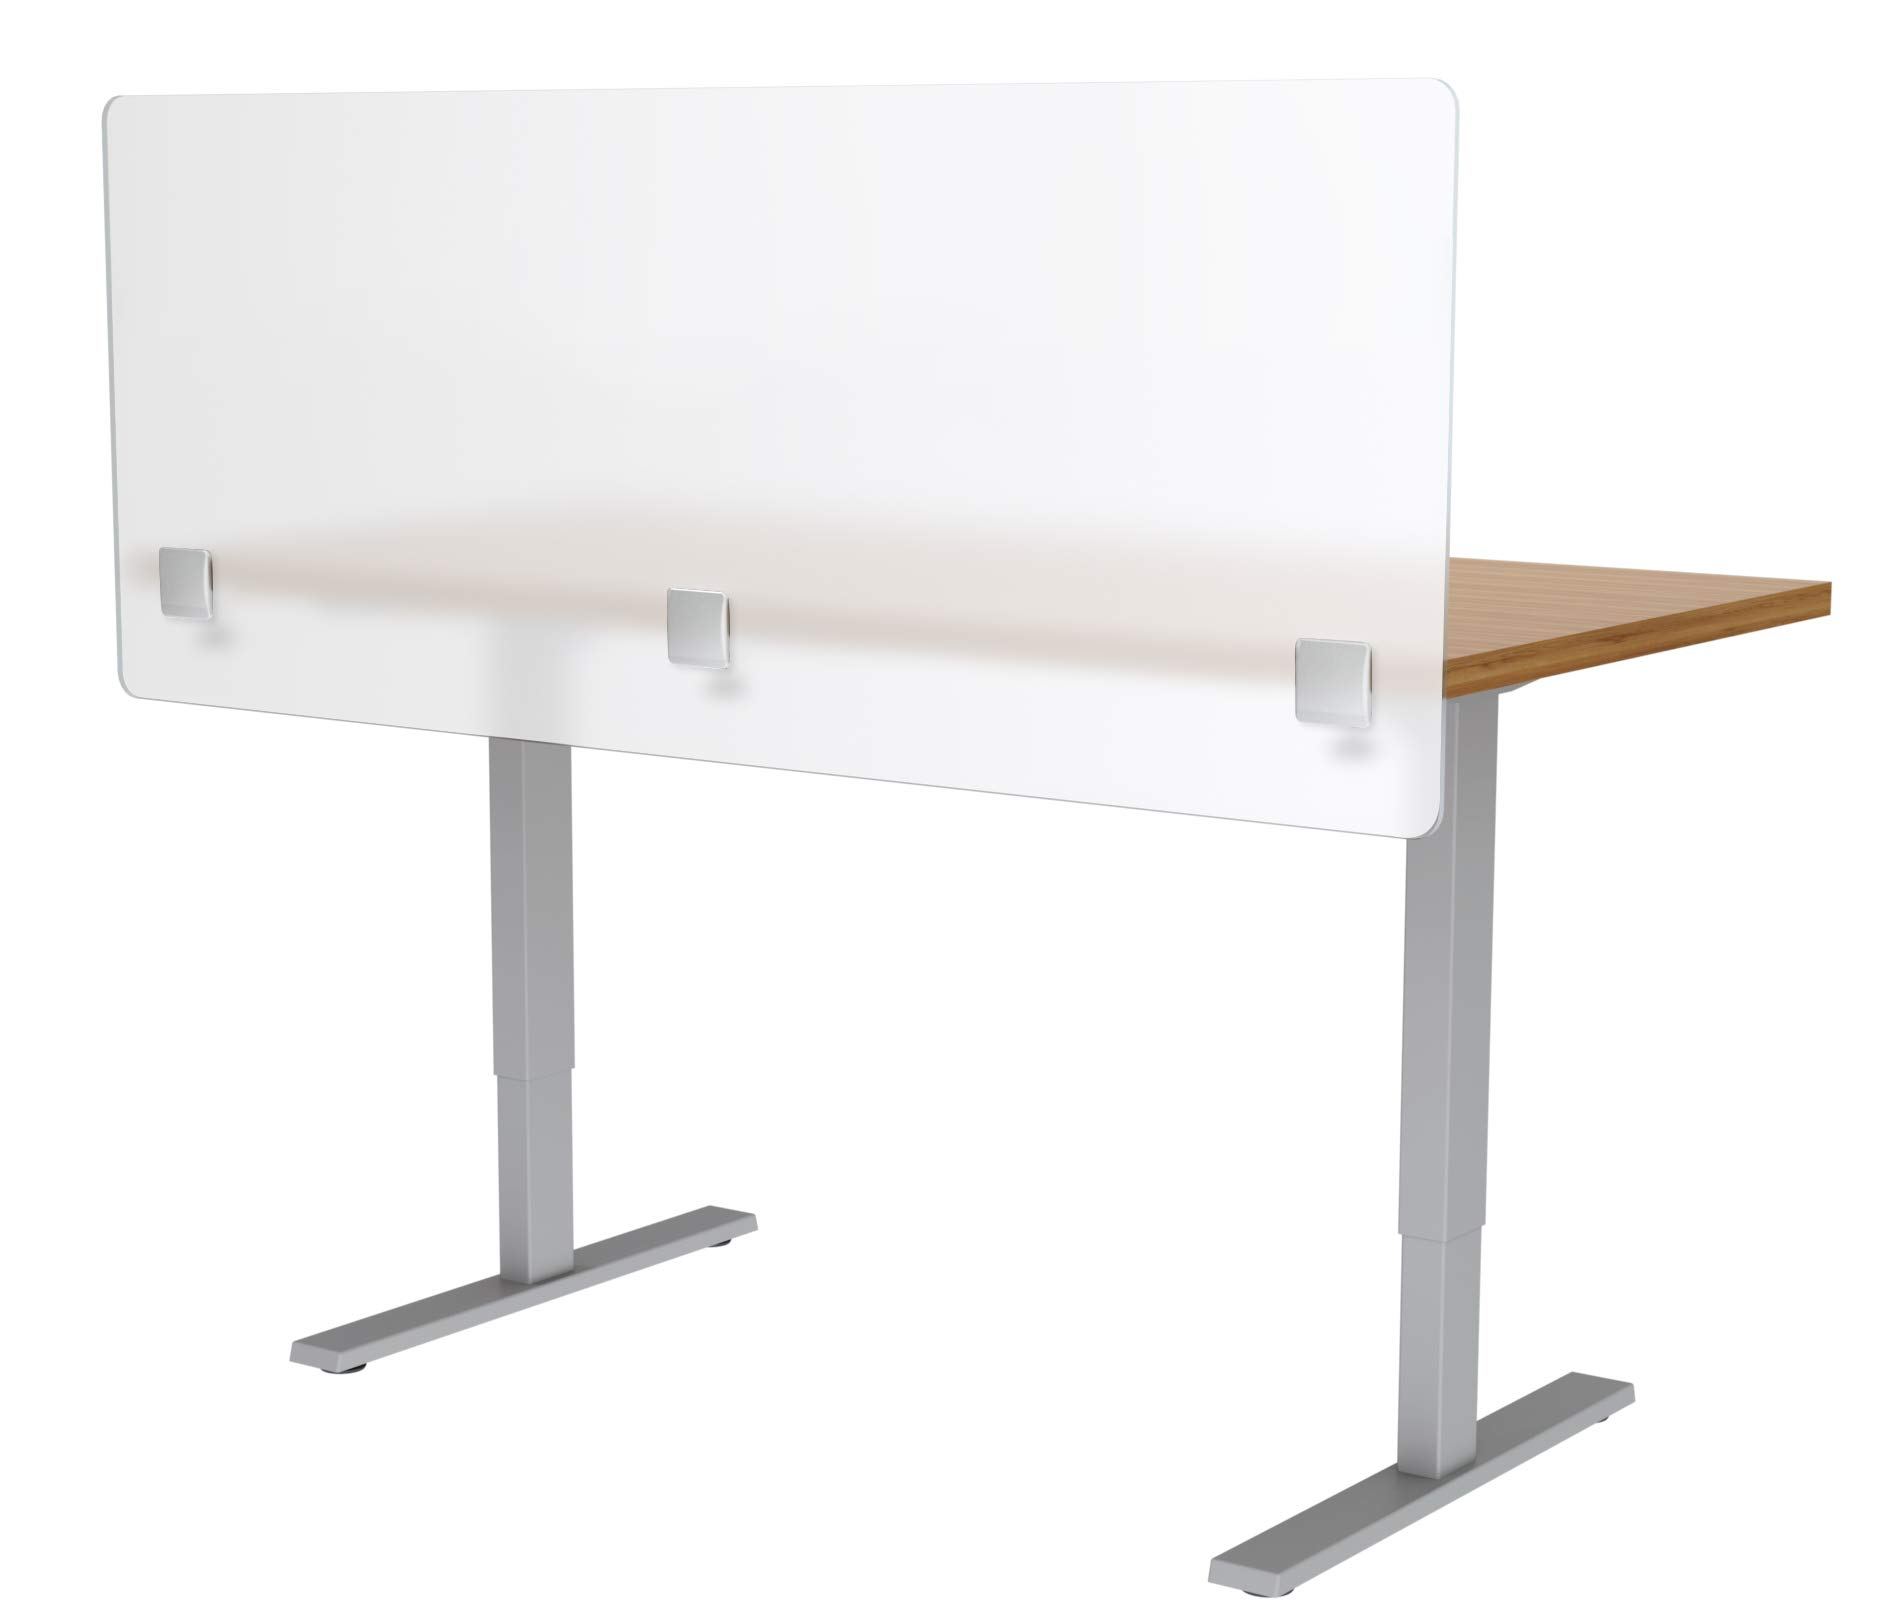 VaRoom Privacy Partition, Frosted Acrylic Clamp-on Desk Divider - 60'' W x 24''H Privacy Desk Mounted Cubicle Panel